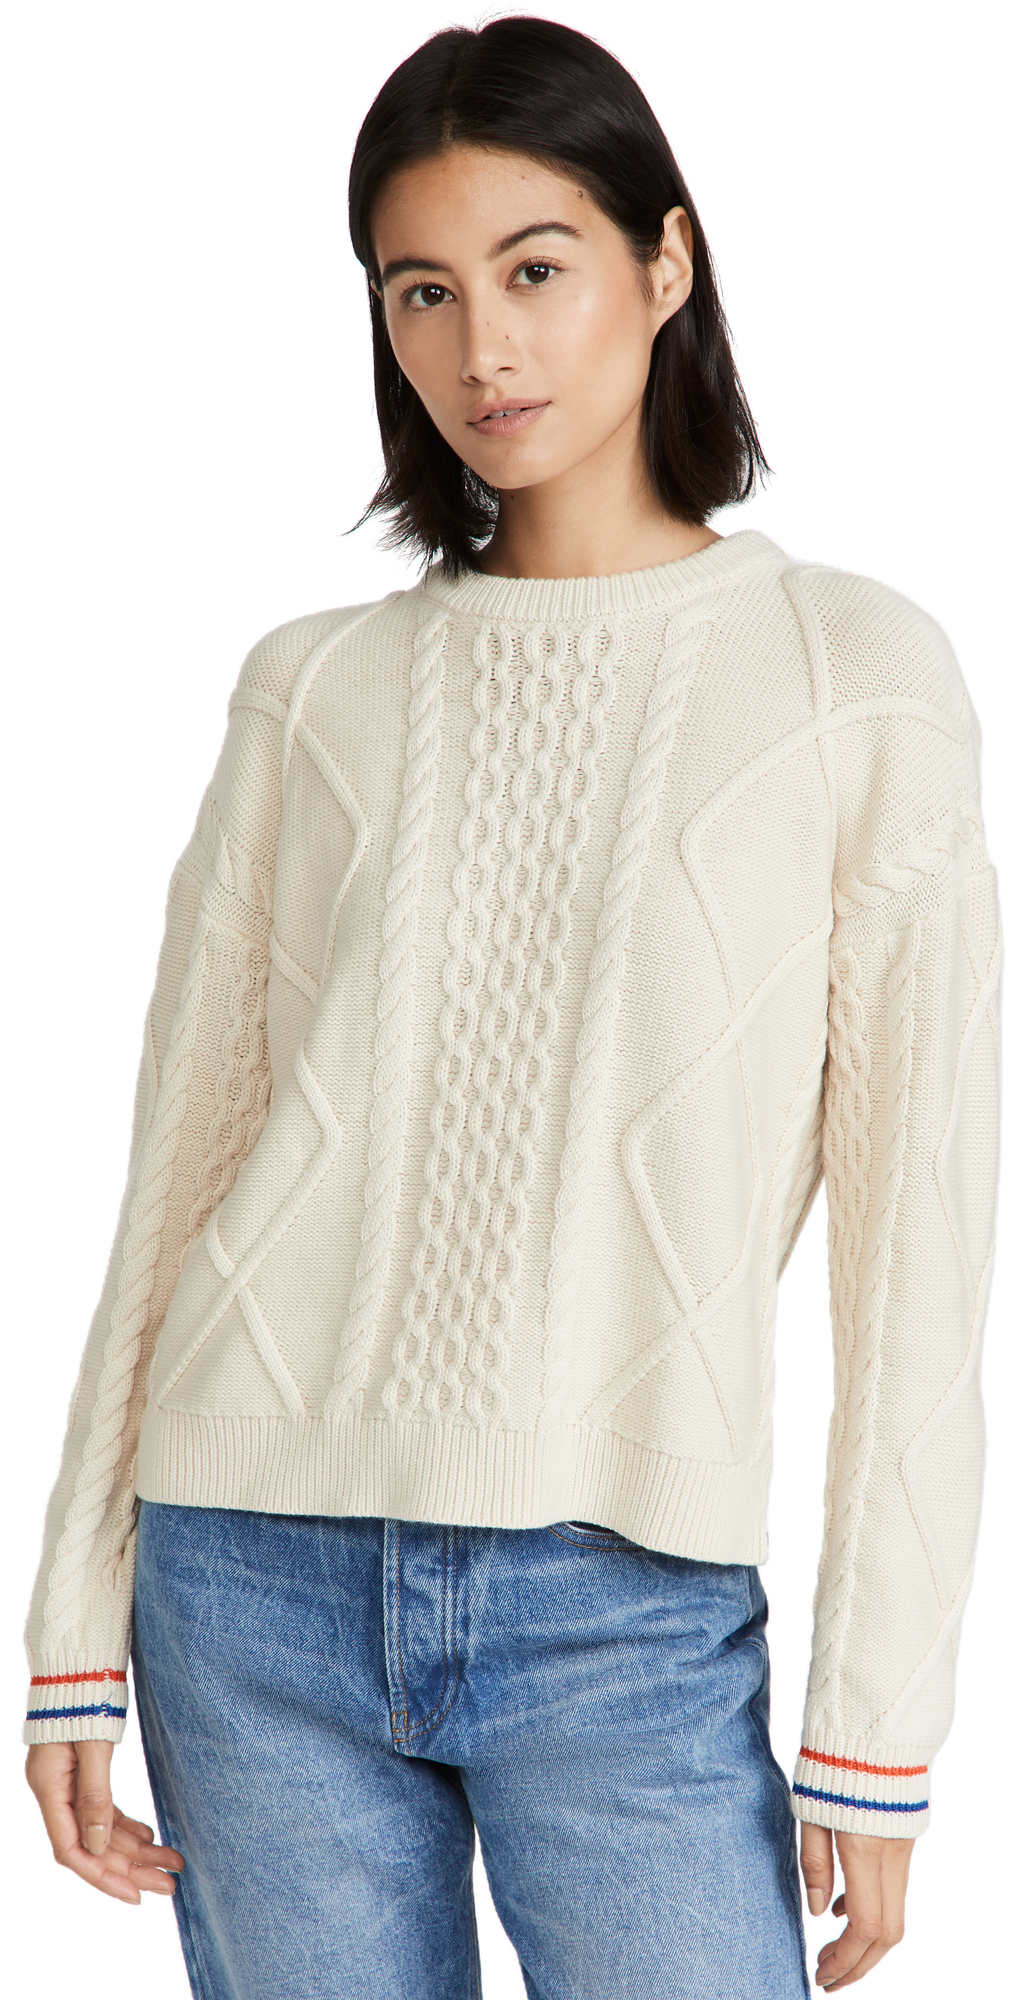 The Verne Sweater